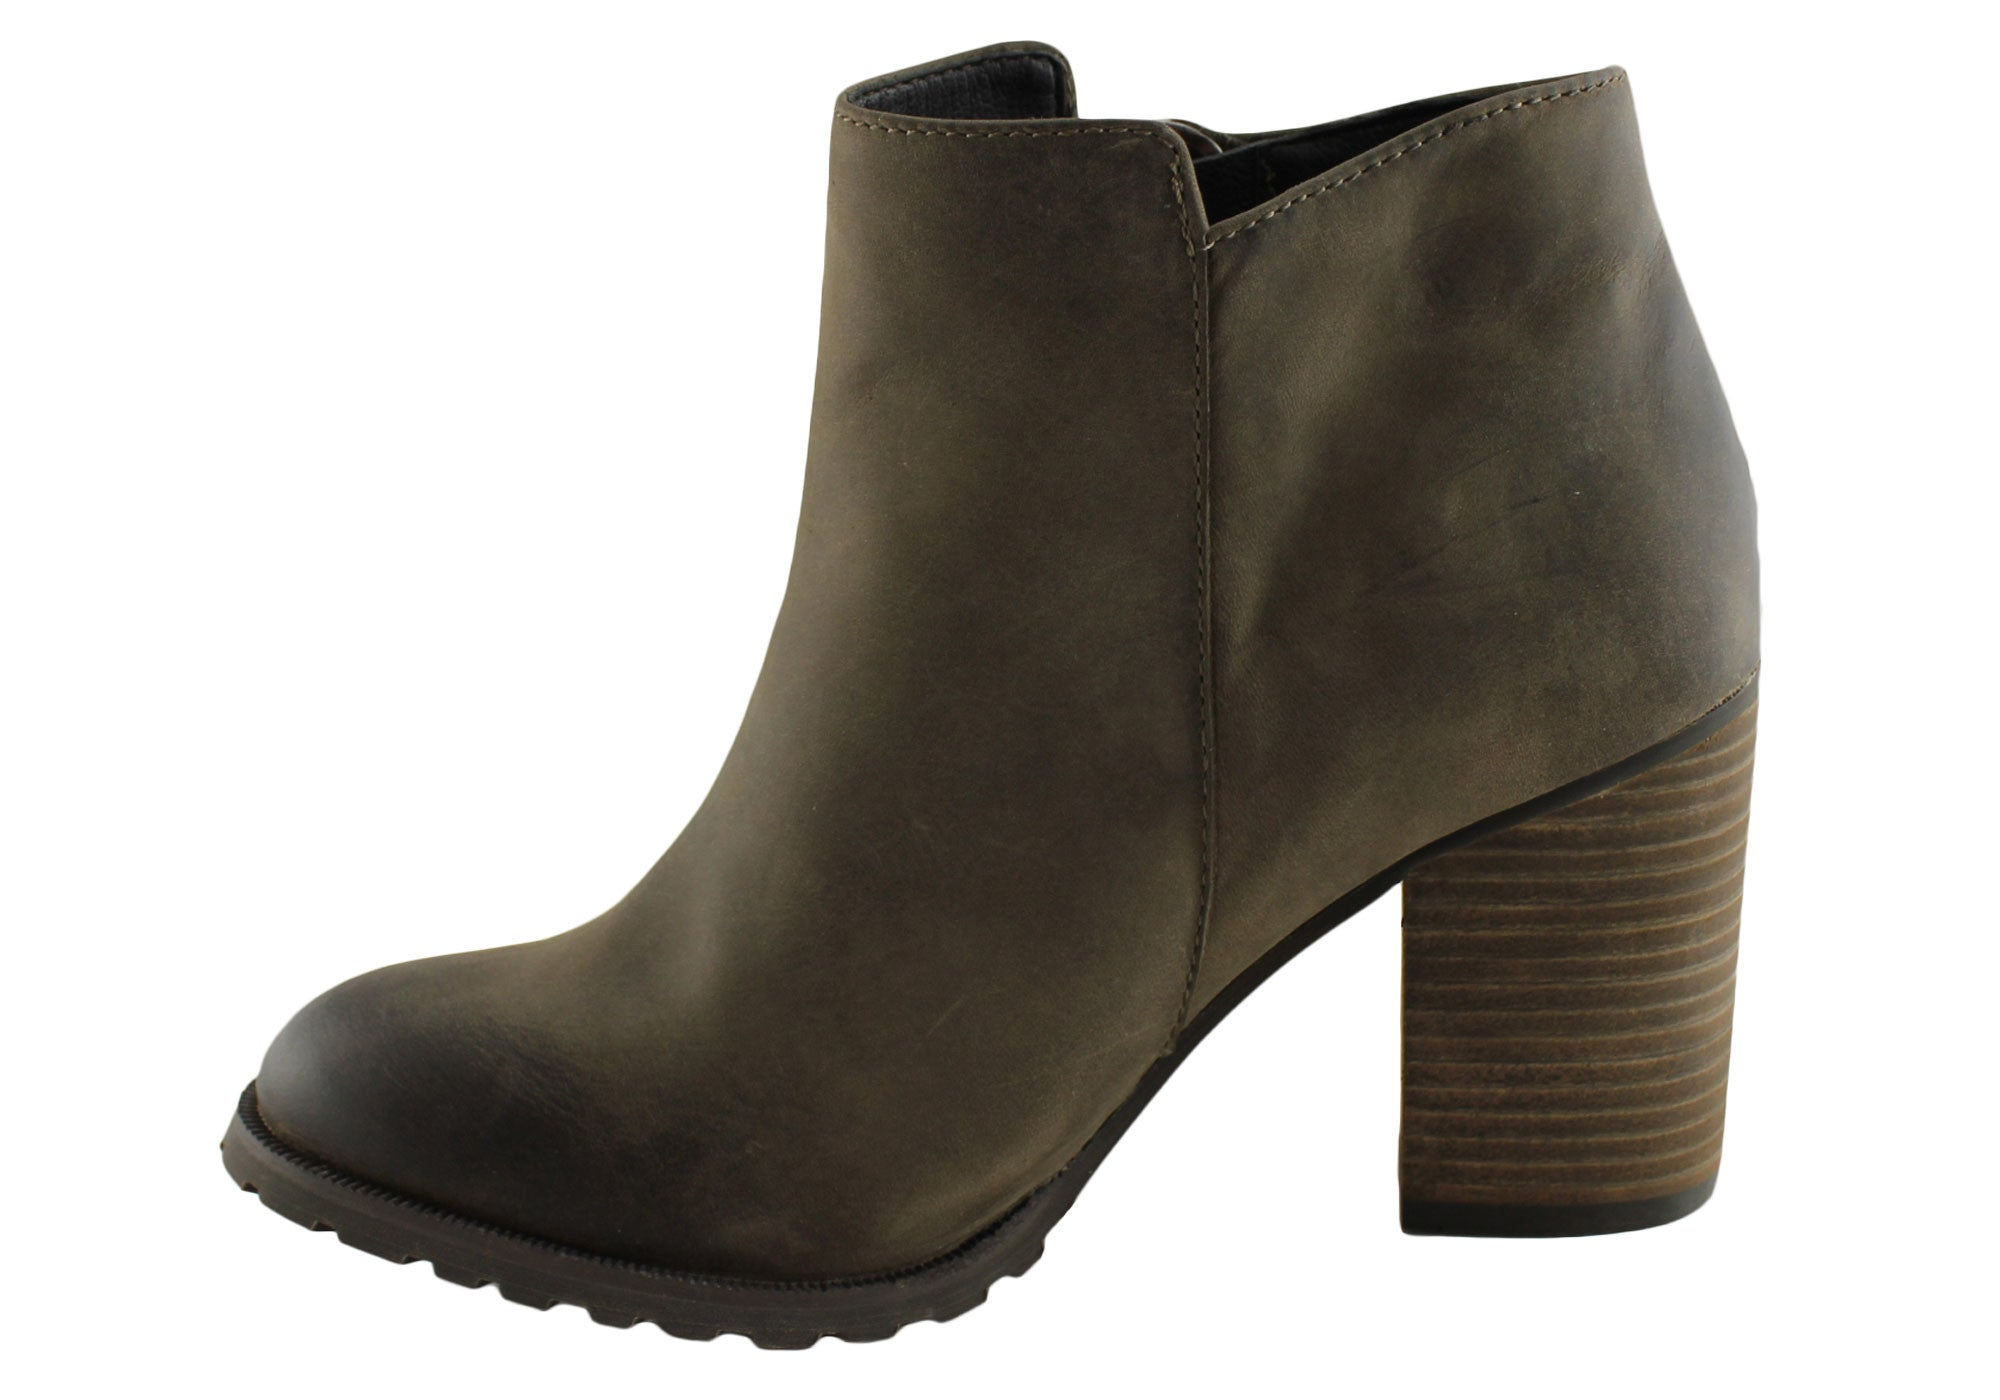 RMK Womens Lucetta Fashion Leather Ankle Boots